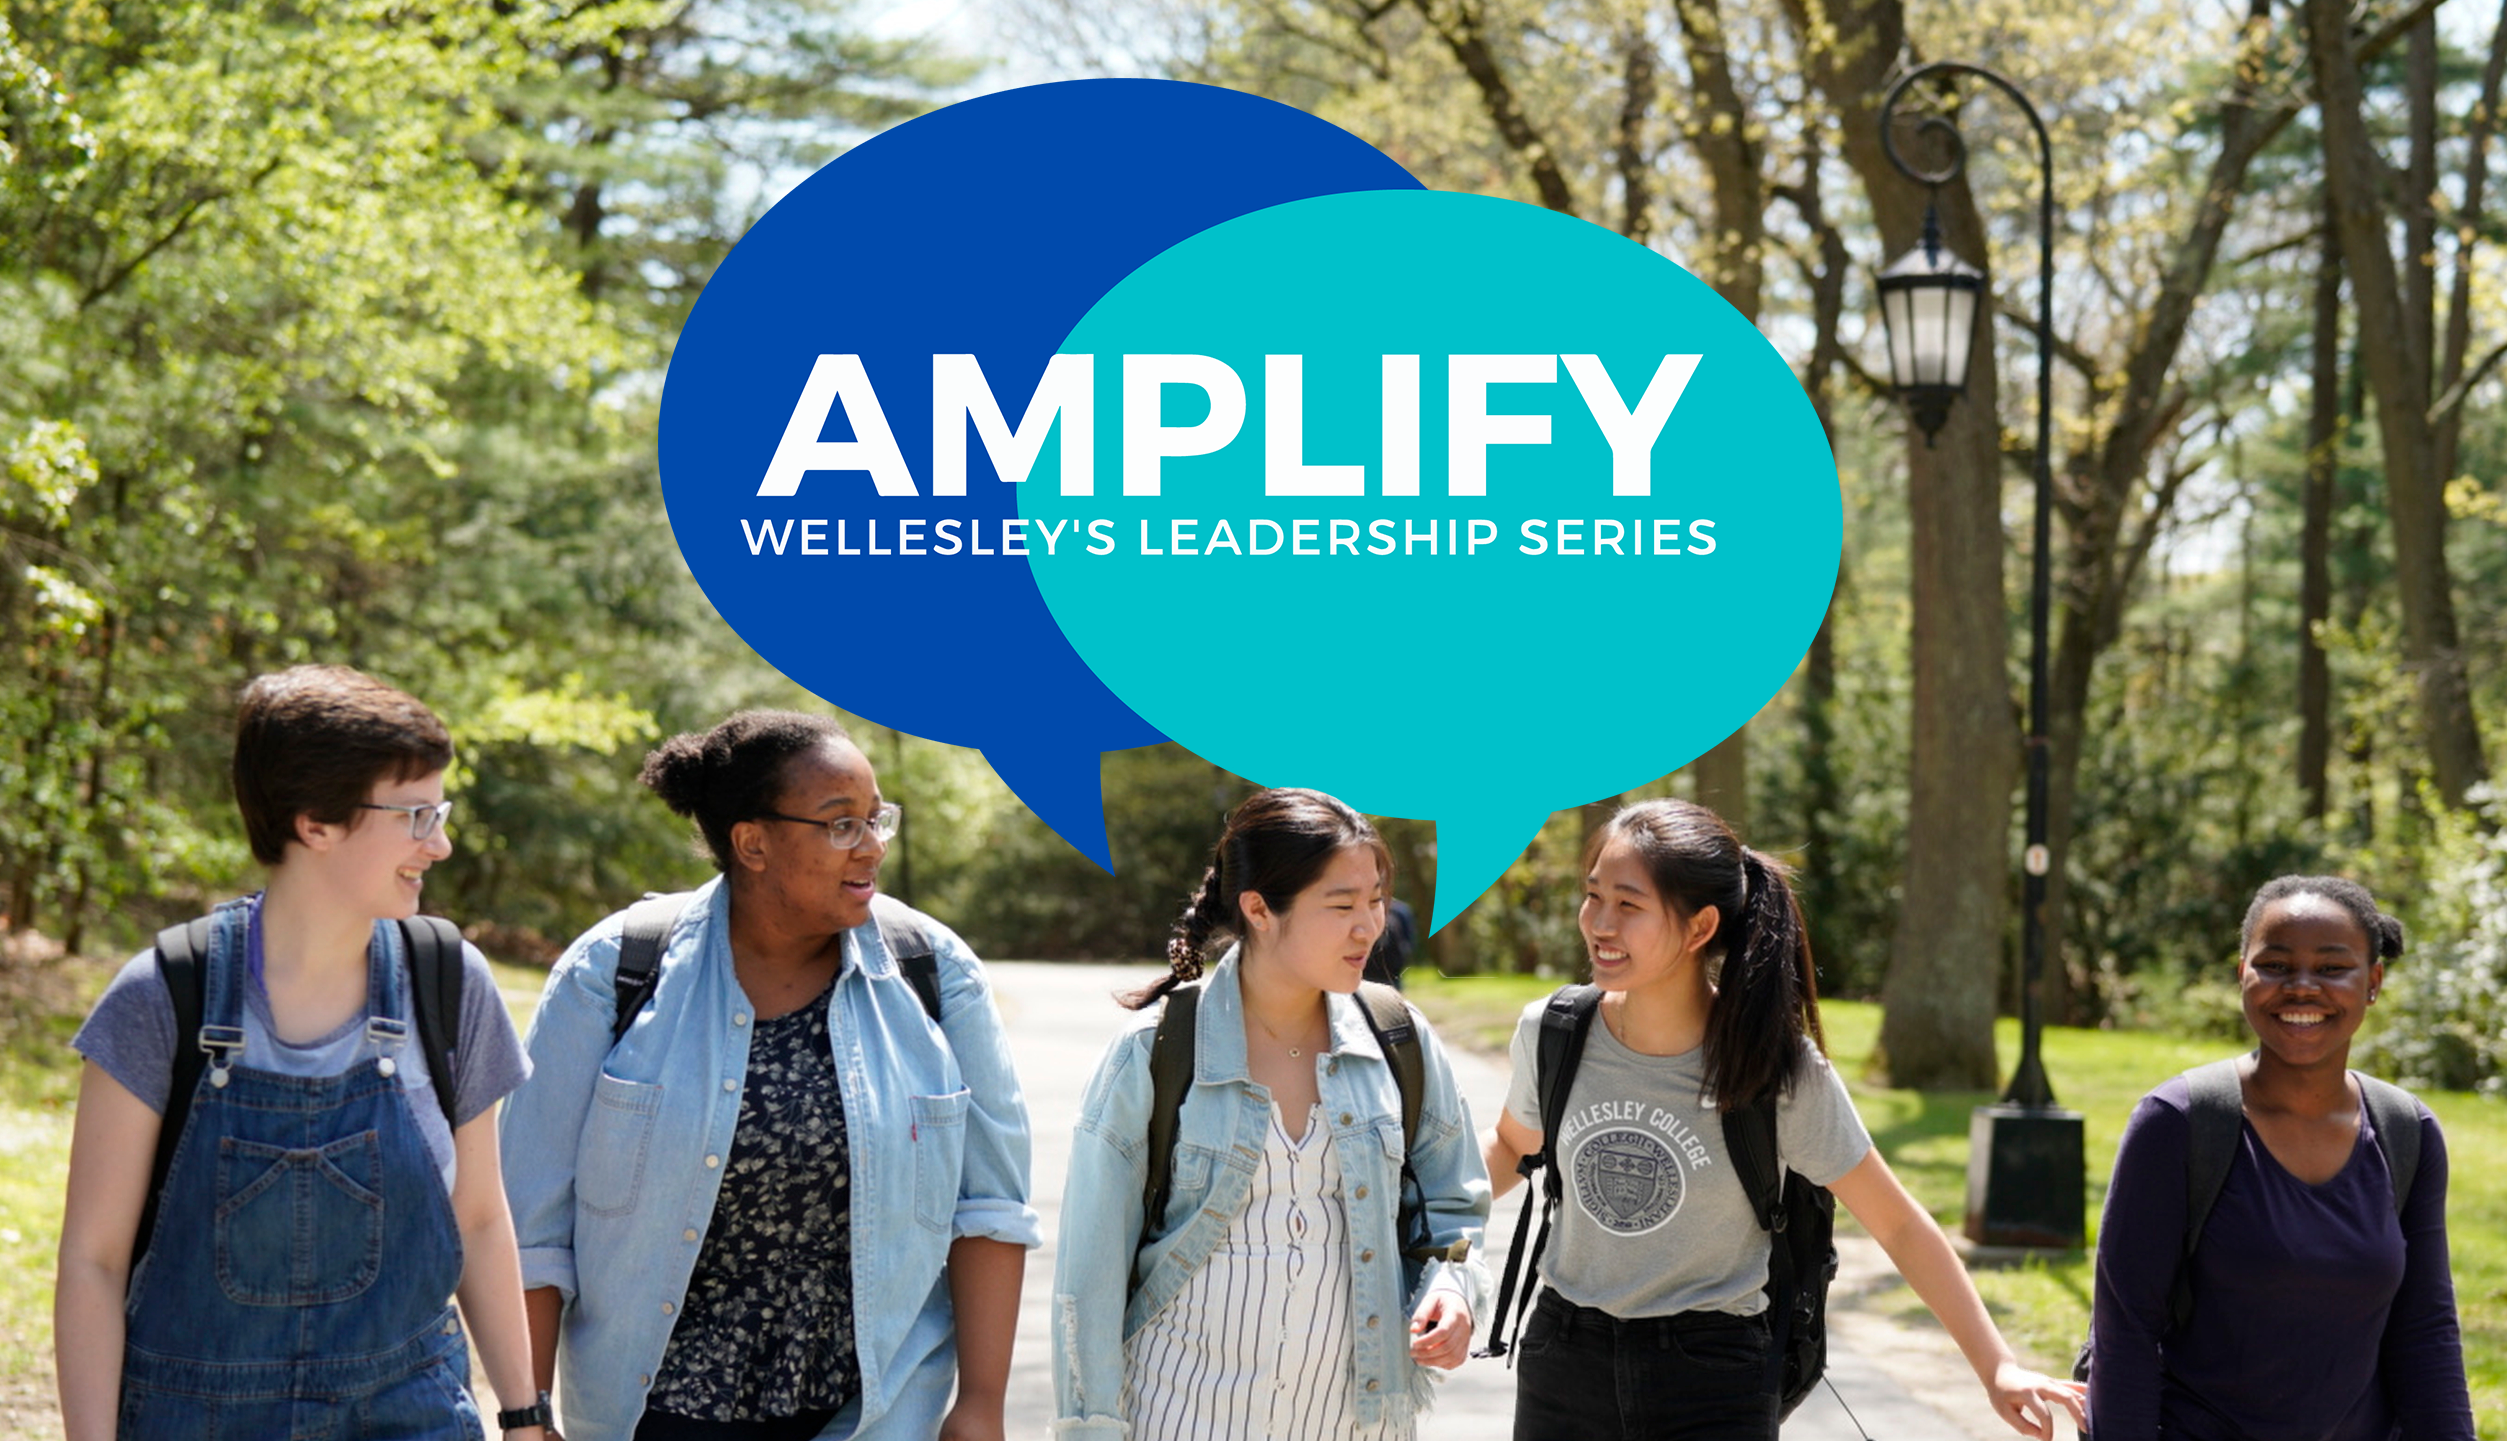 AMPLIFY logo superimposed with Wellesley students walking outside